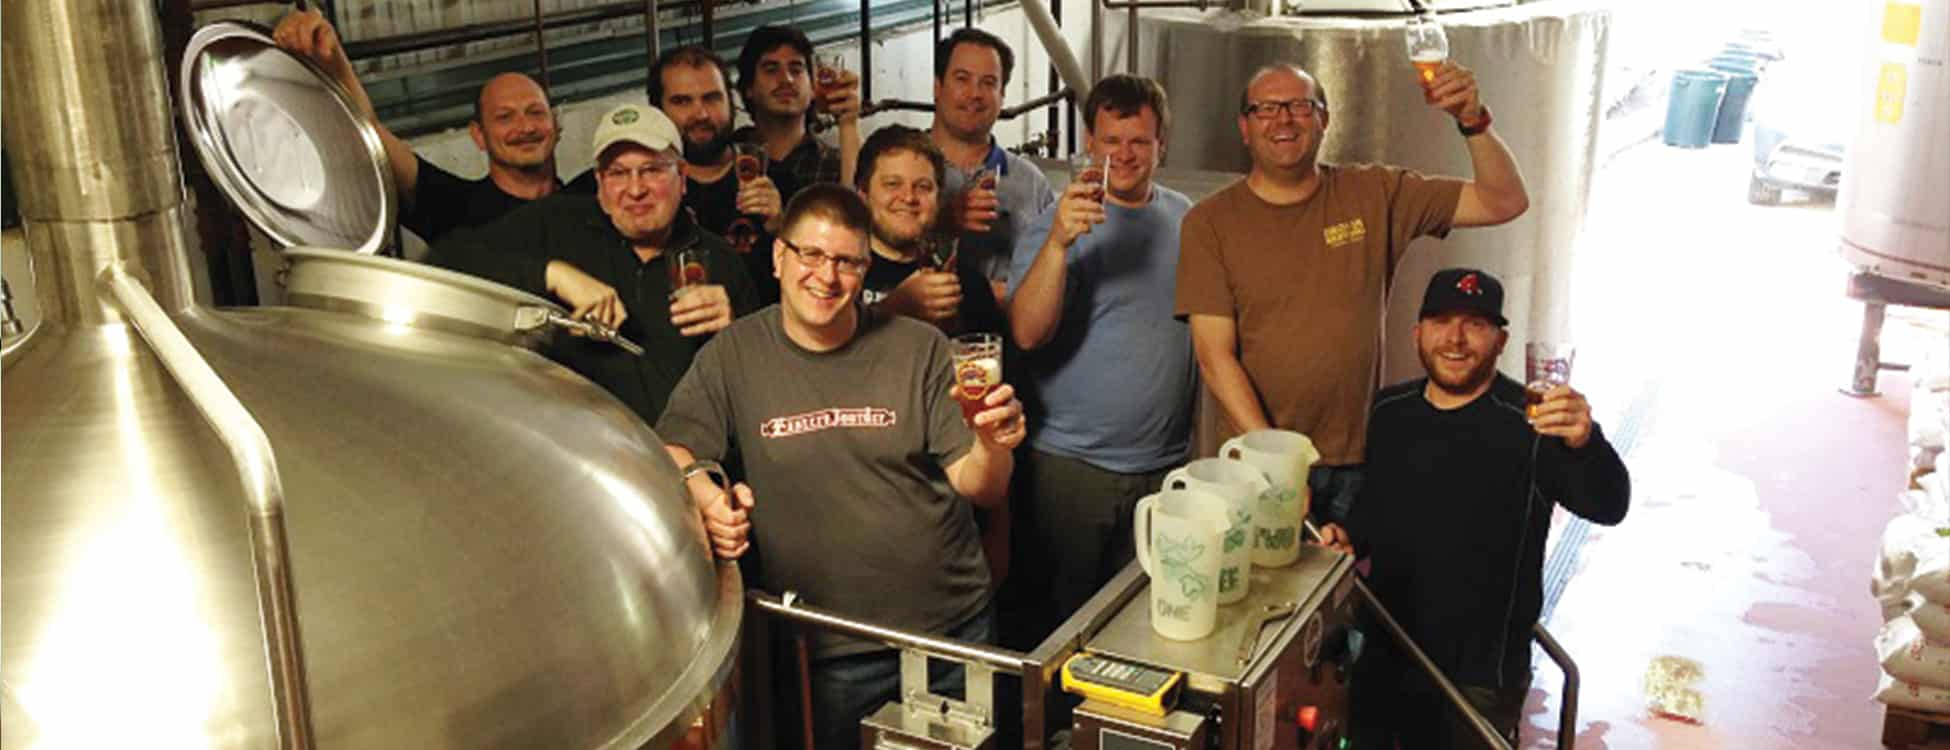 brewing class, beer, vermont tech agriculture institute